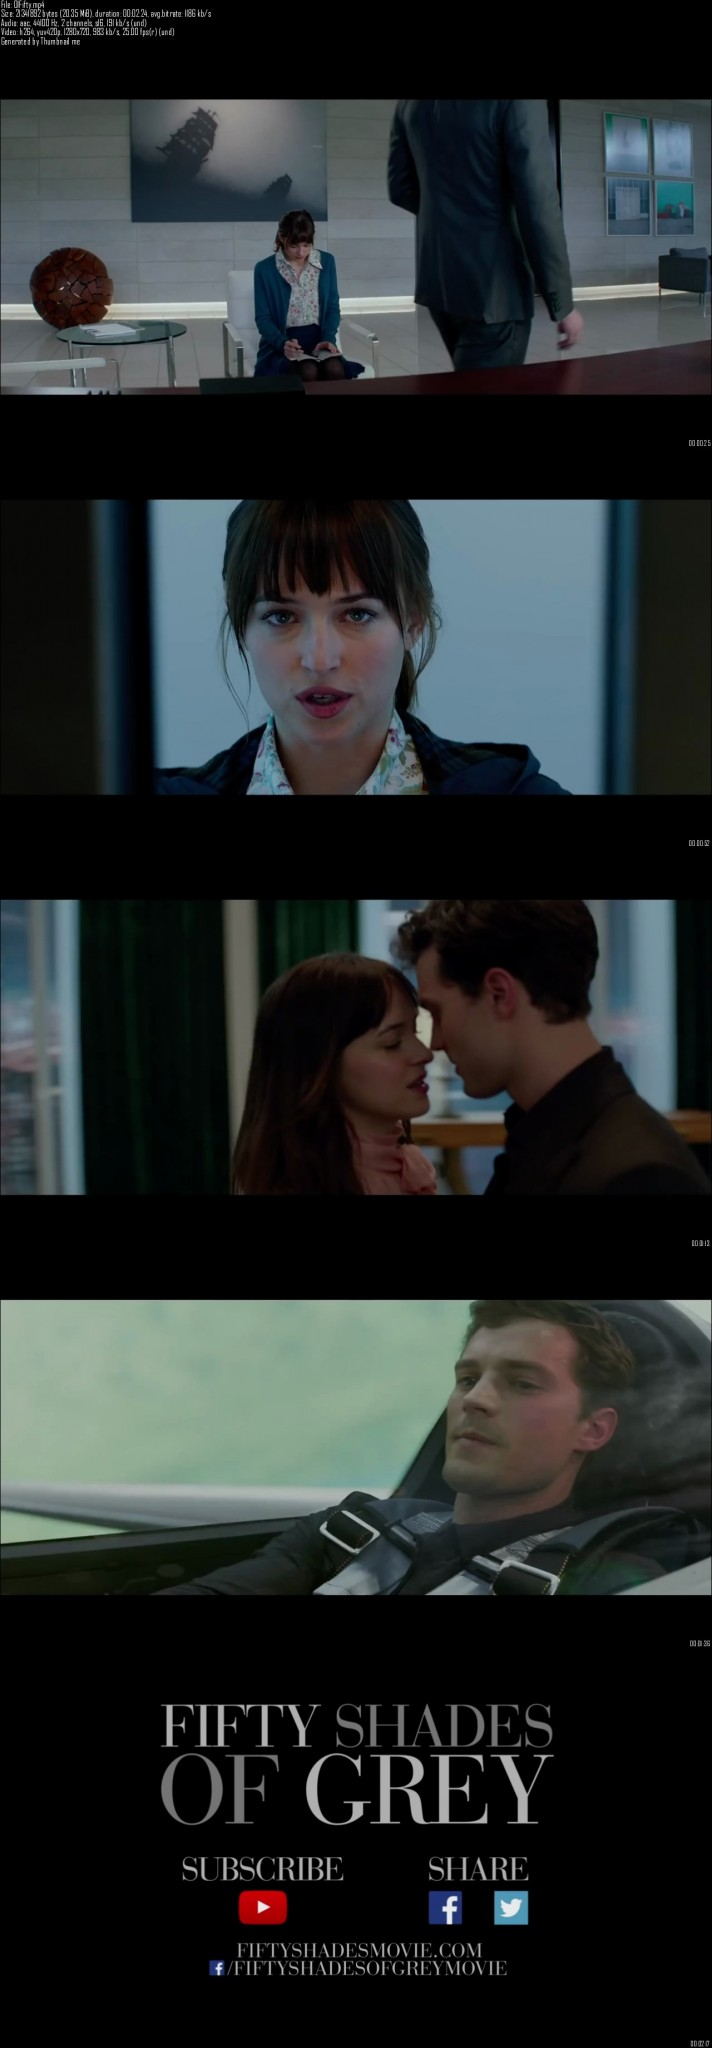 Fifty Shades of Grey Movie Trailer Free Download HD